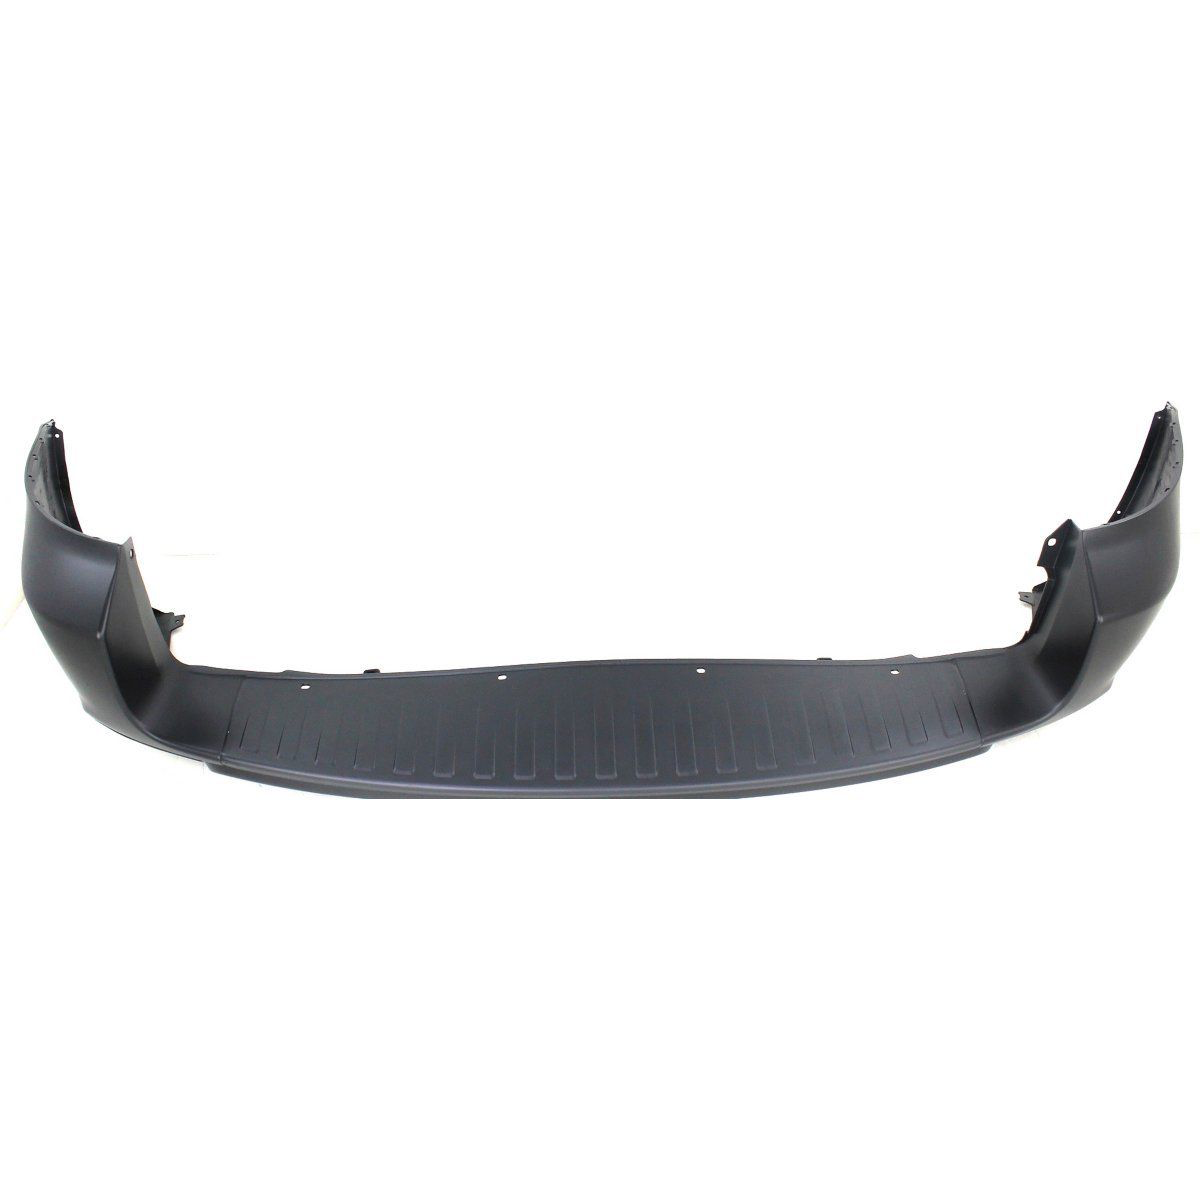 2009-2012 TOYOTA RAV4 Rear Bumper Cover w/o Wheel Opening Flares  w/Gate Mtd Spare Painted to Match